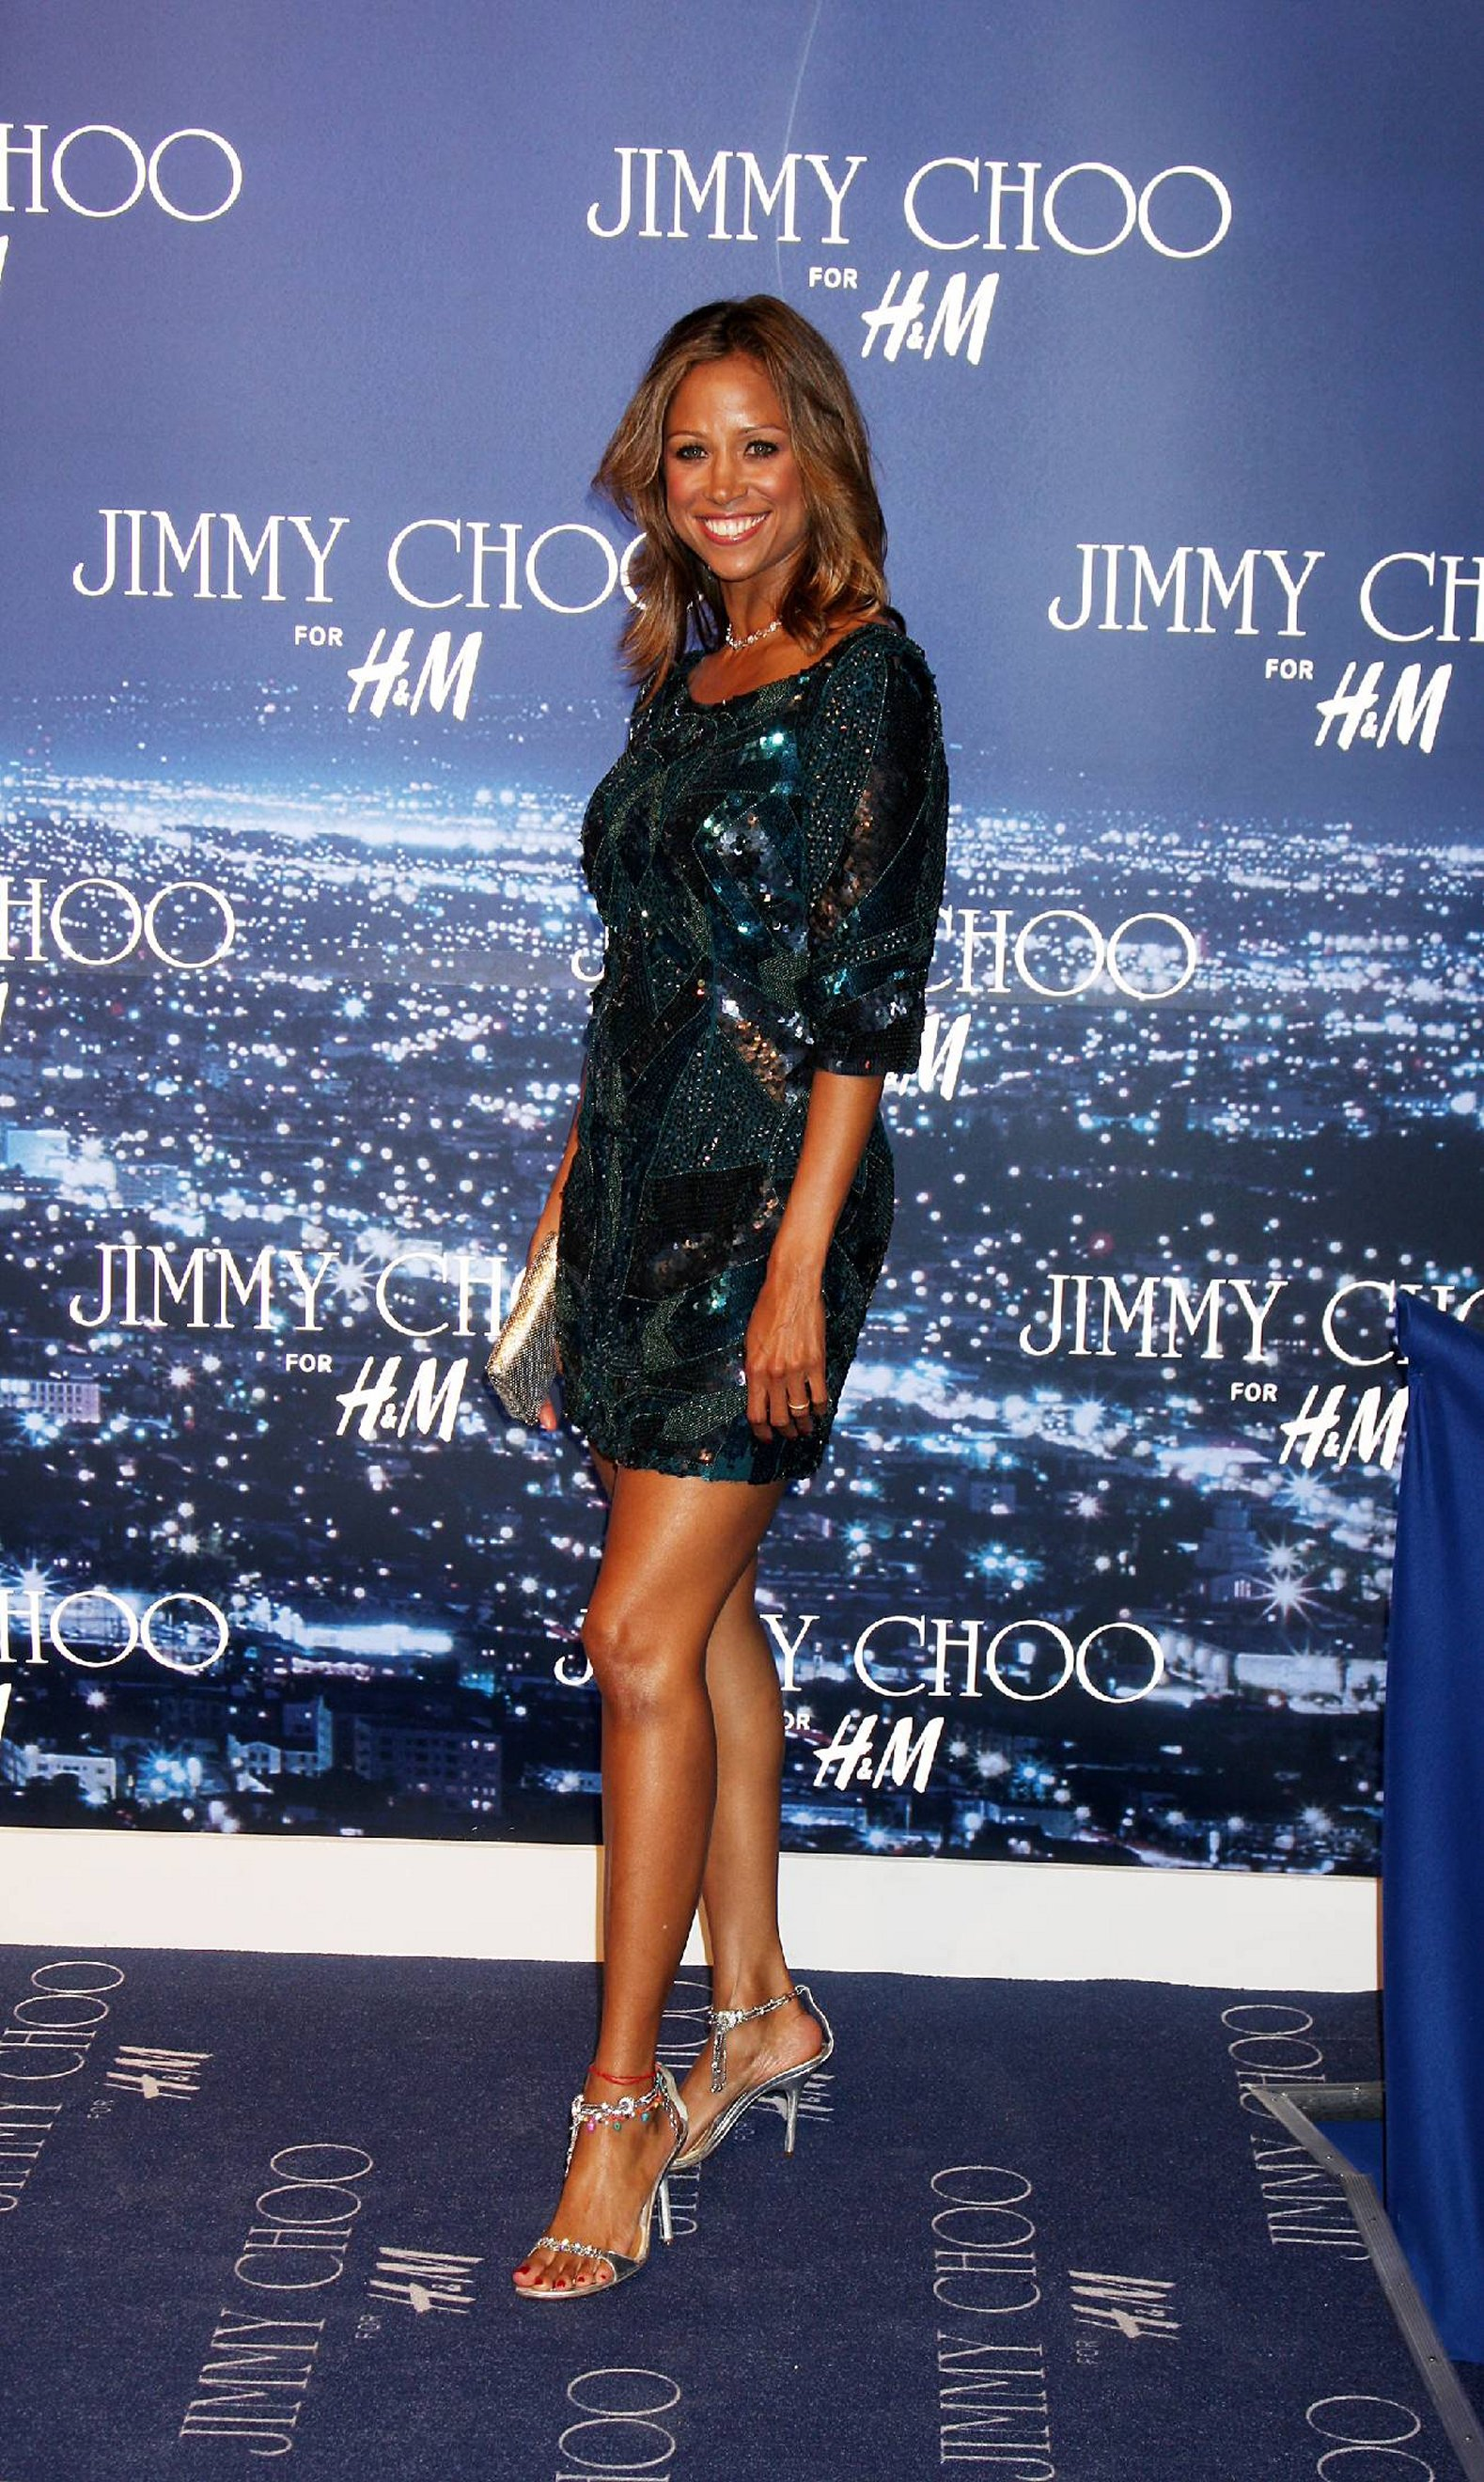 67712_stacy_dash_at_jimmy_choo_h_and_m_colection_event_01_122_482lo.jpg